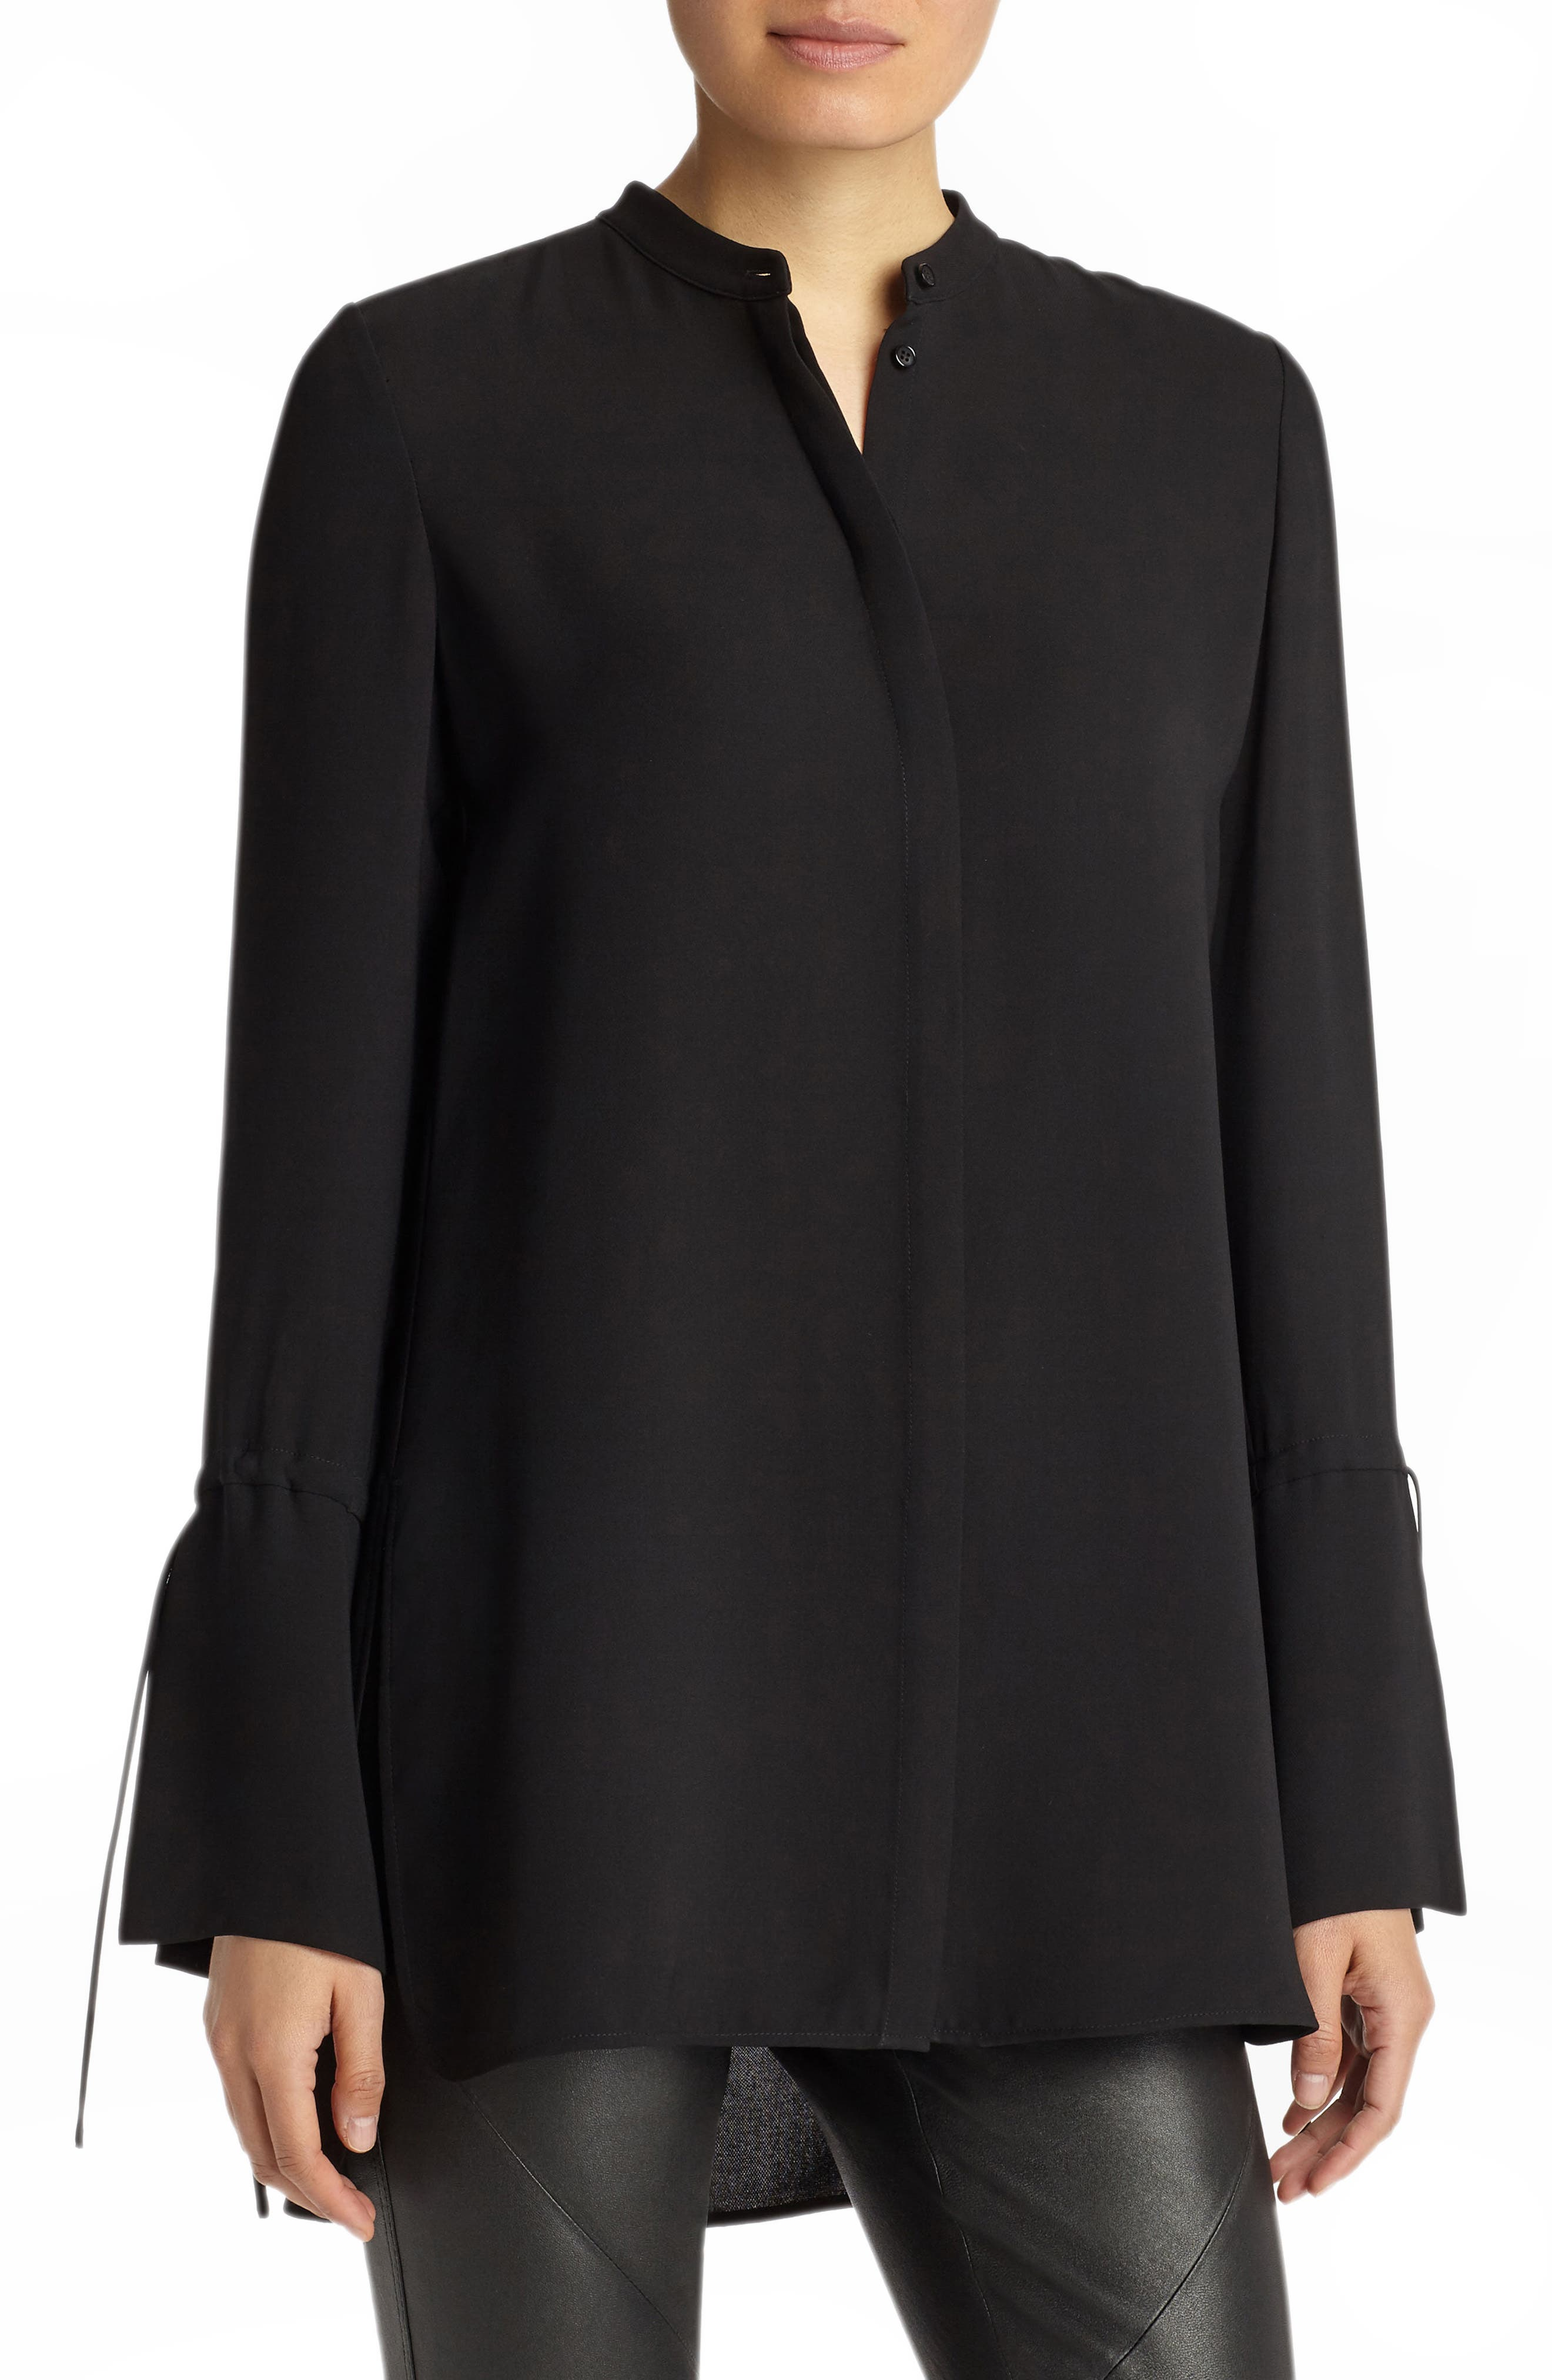 Desra Silk Blouse,                             Main thumbnail 1, color,                             Black